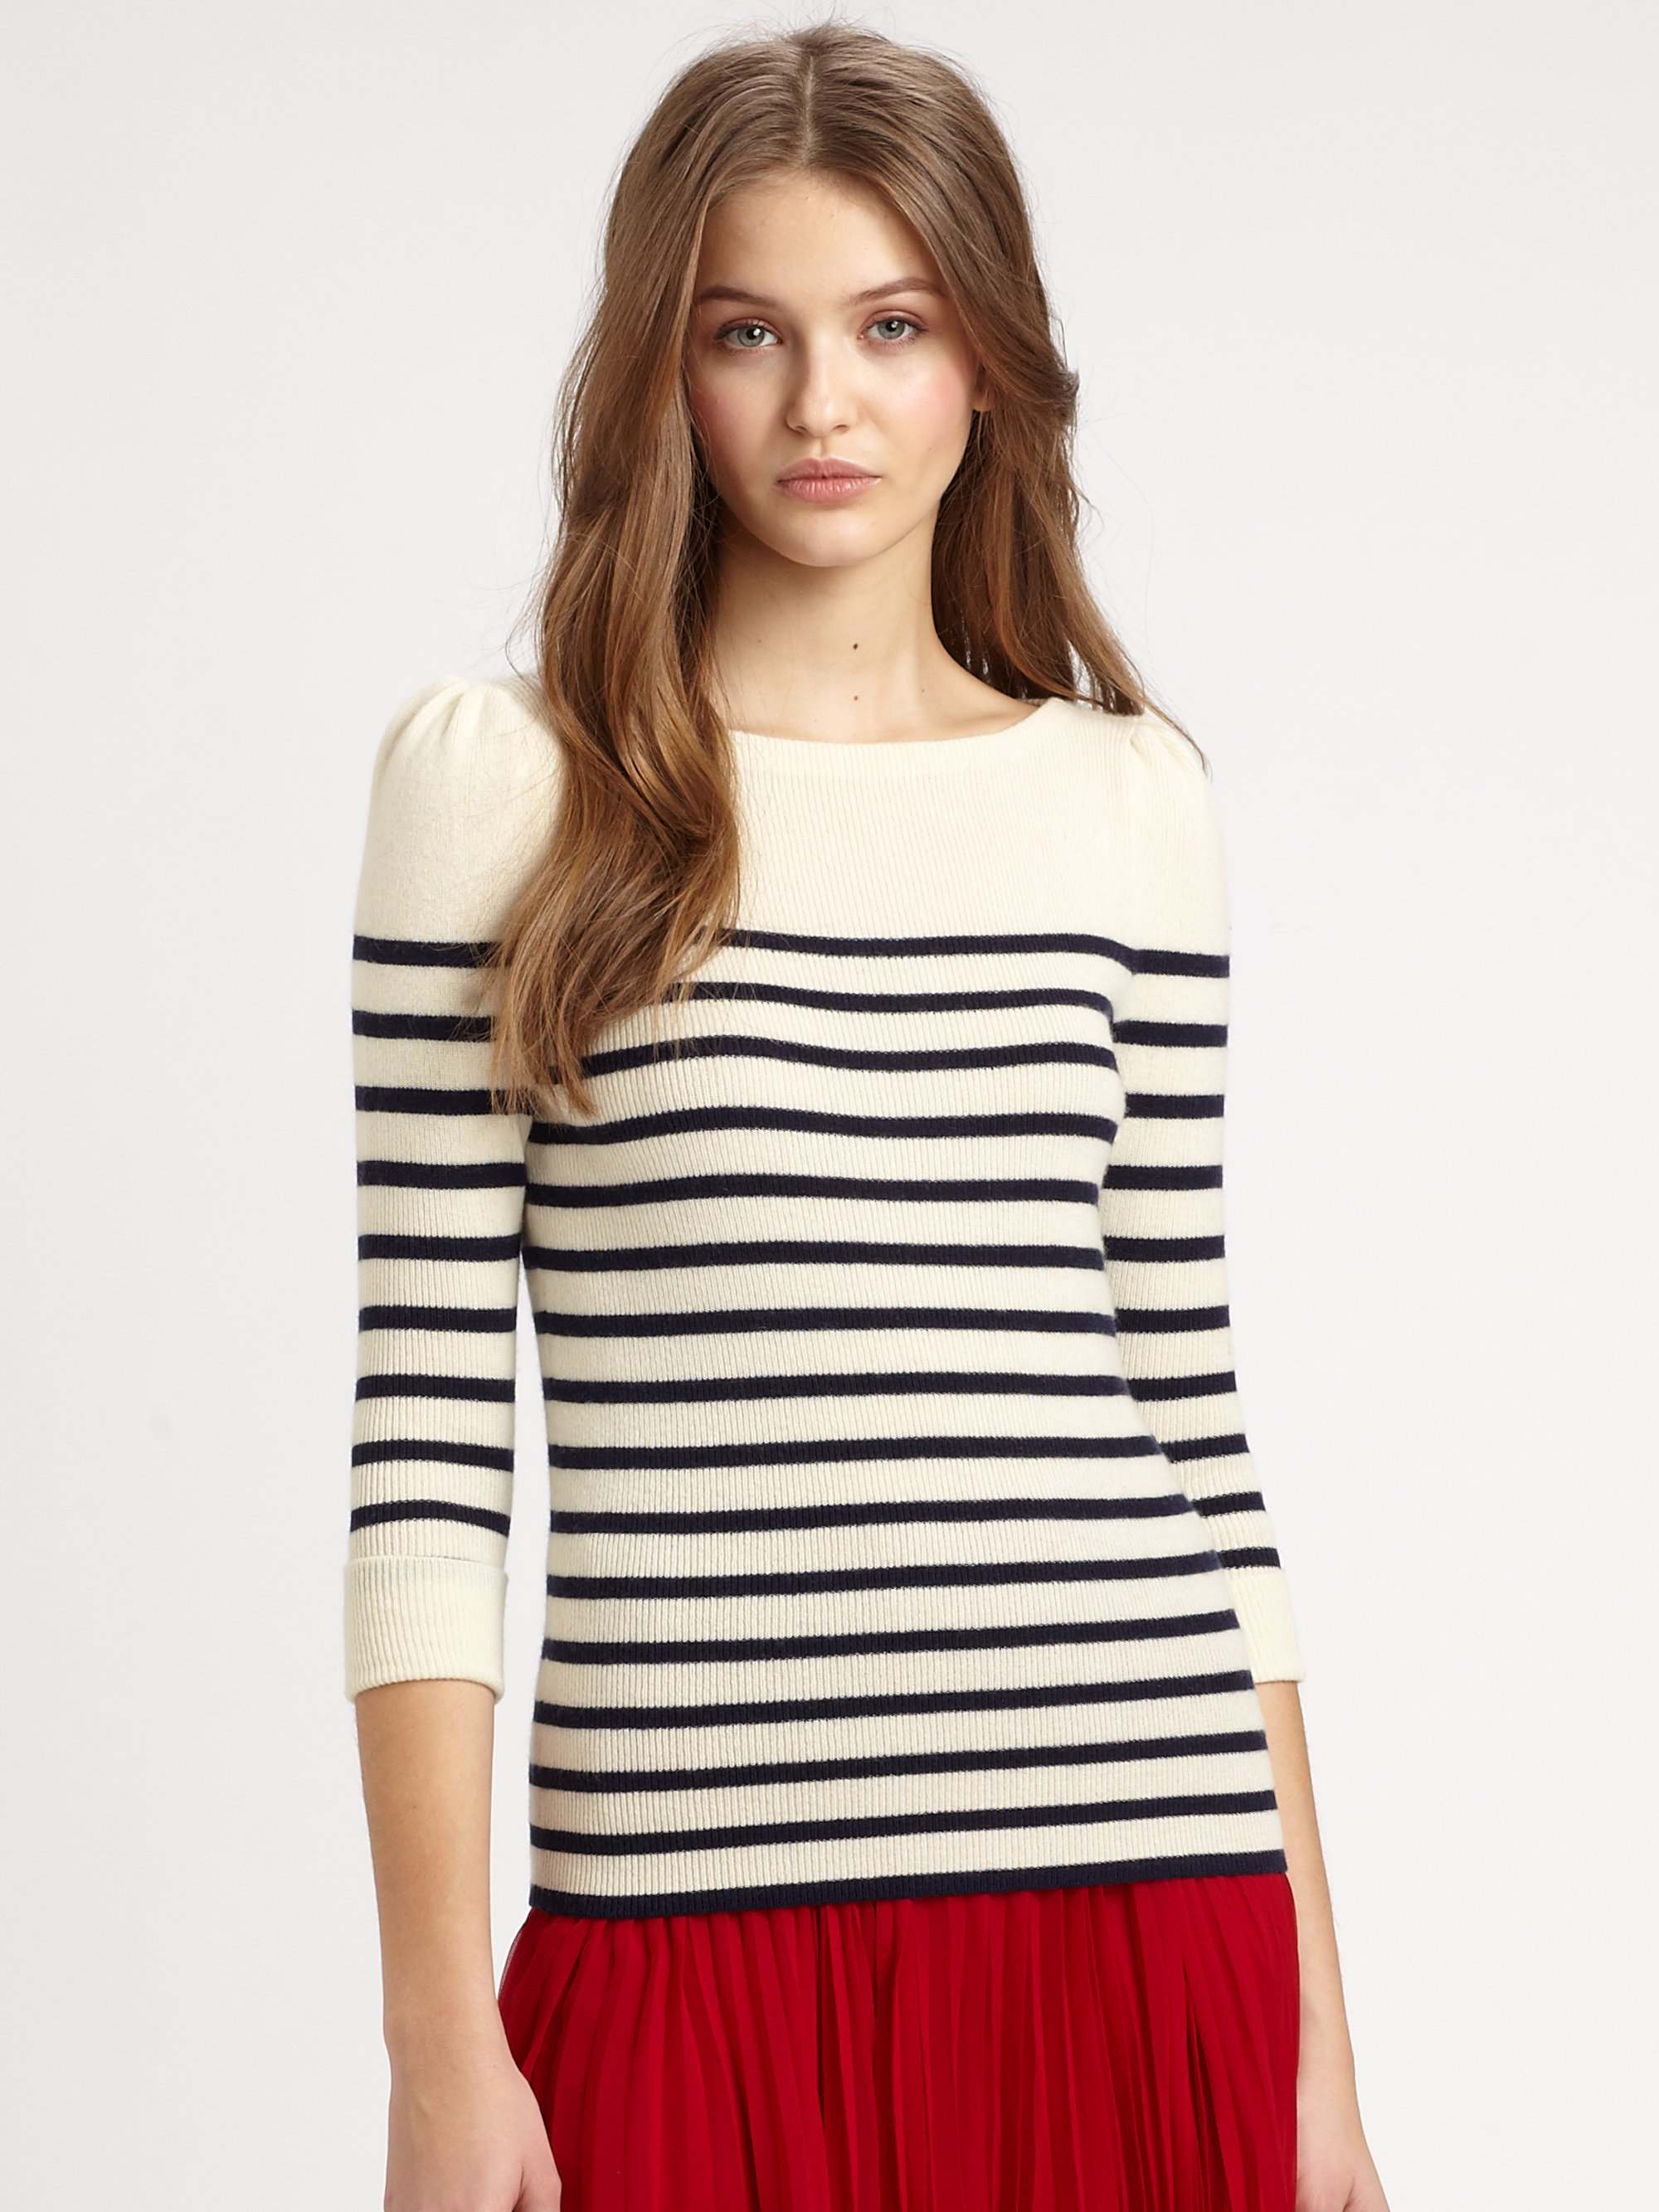 Shop for blue striped sweater online at Target. Free shipping on purchases over $35 and save 5% every day with your Target REDcard.